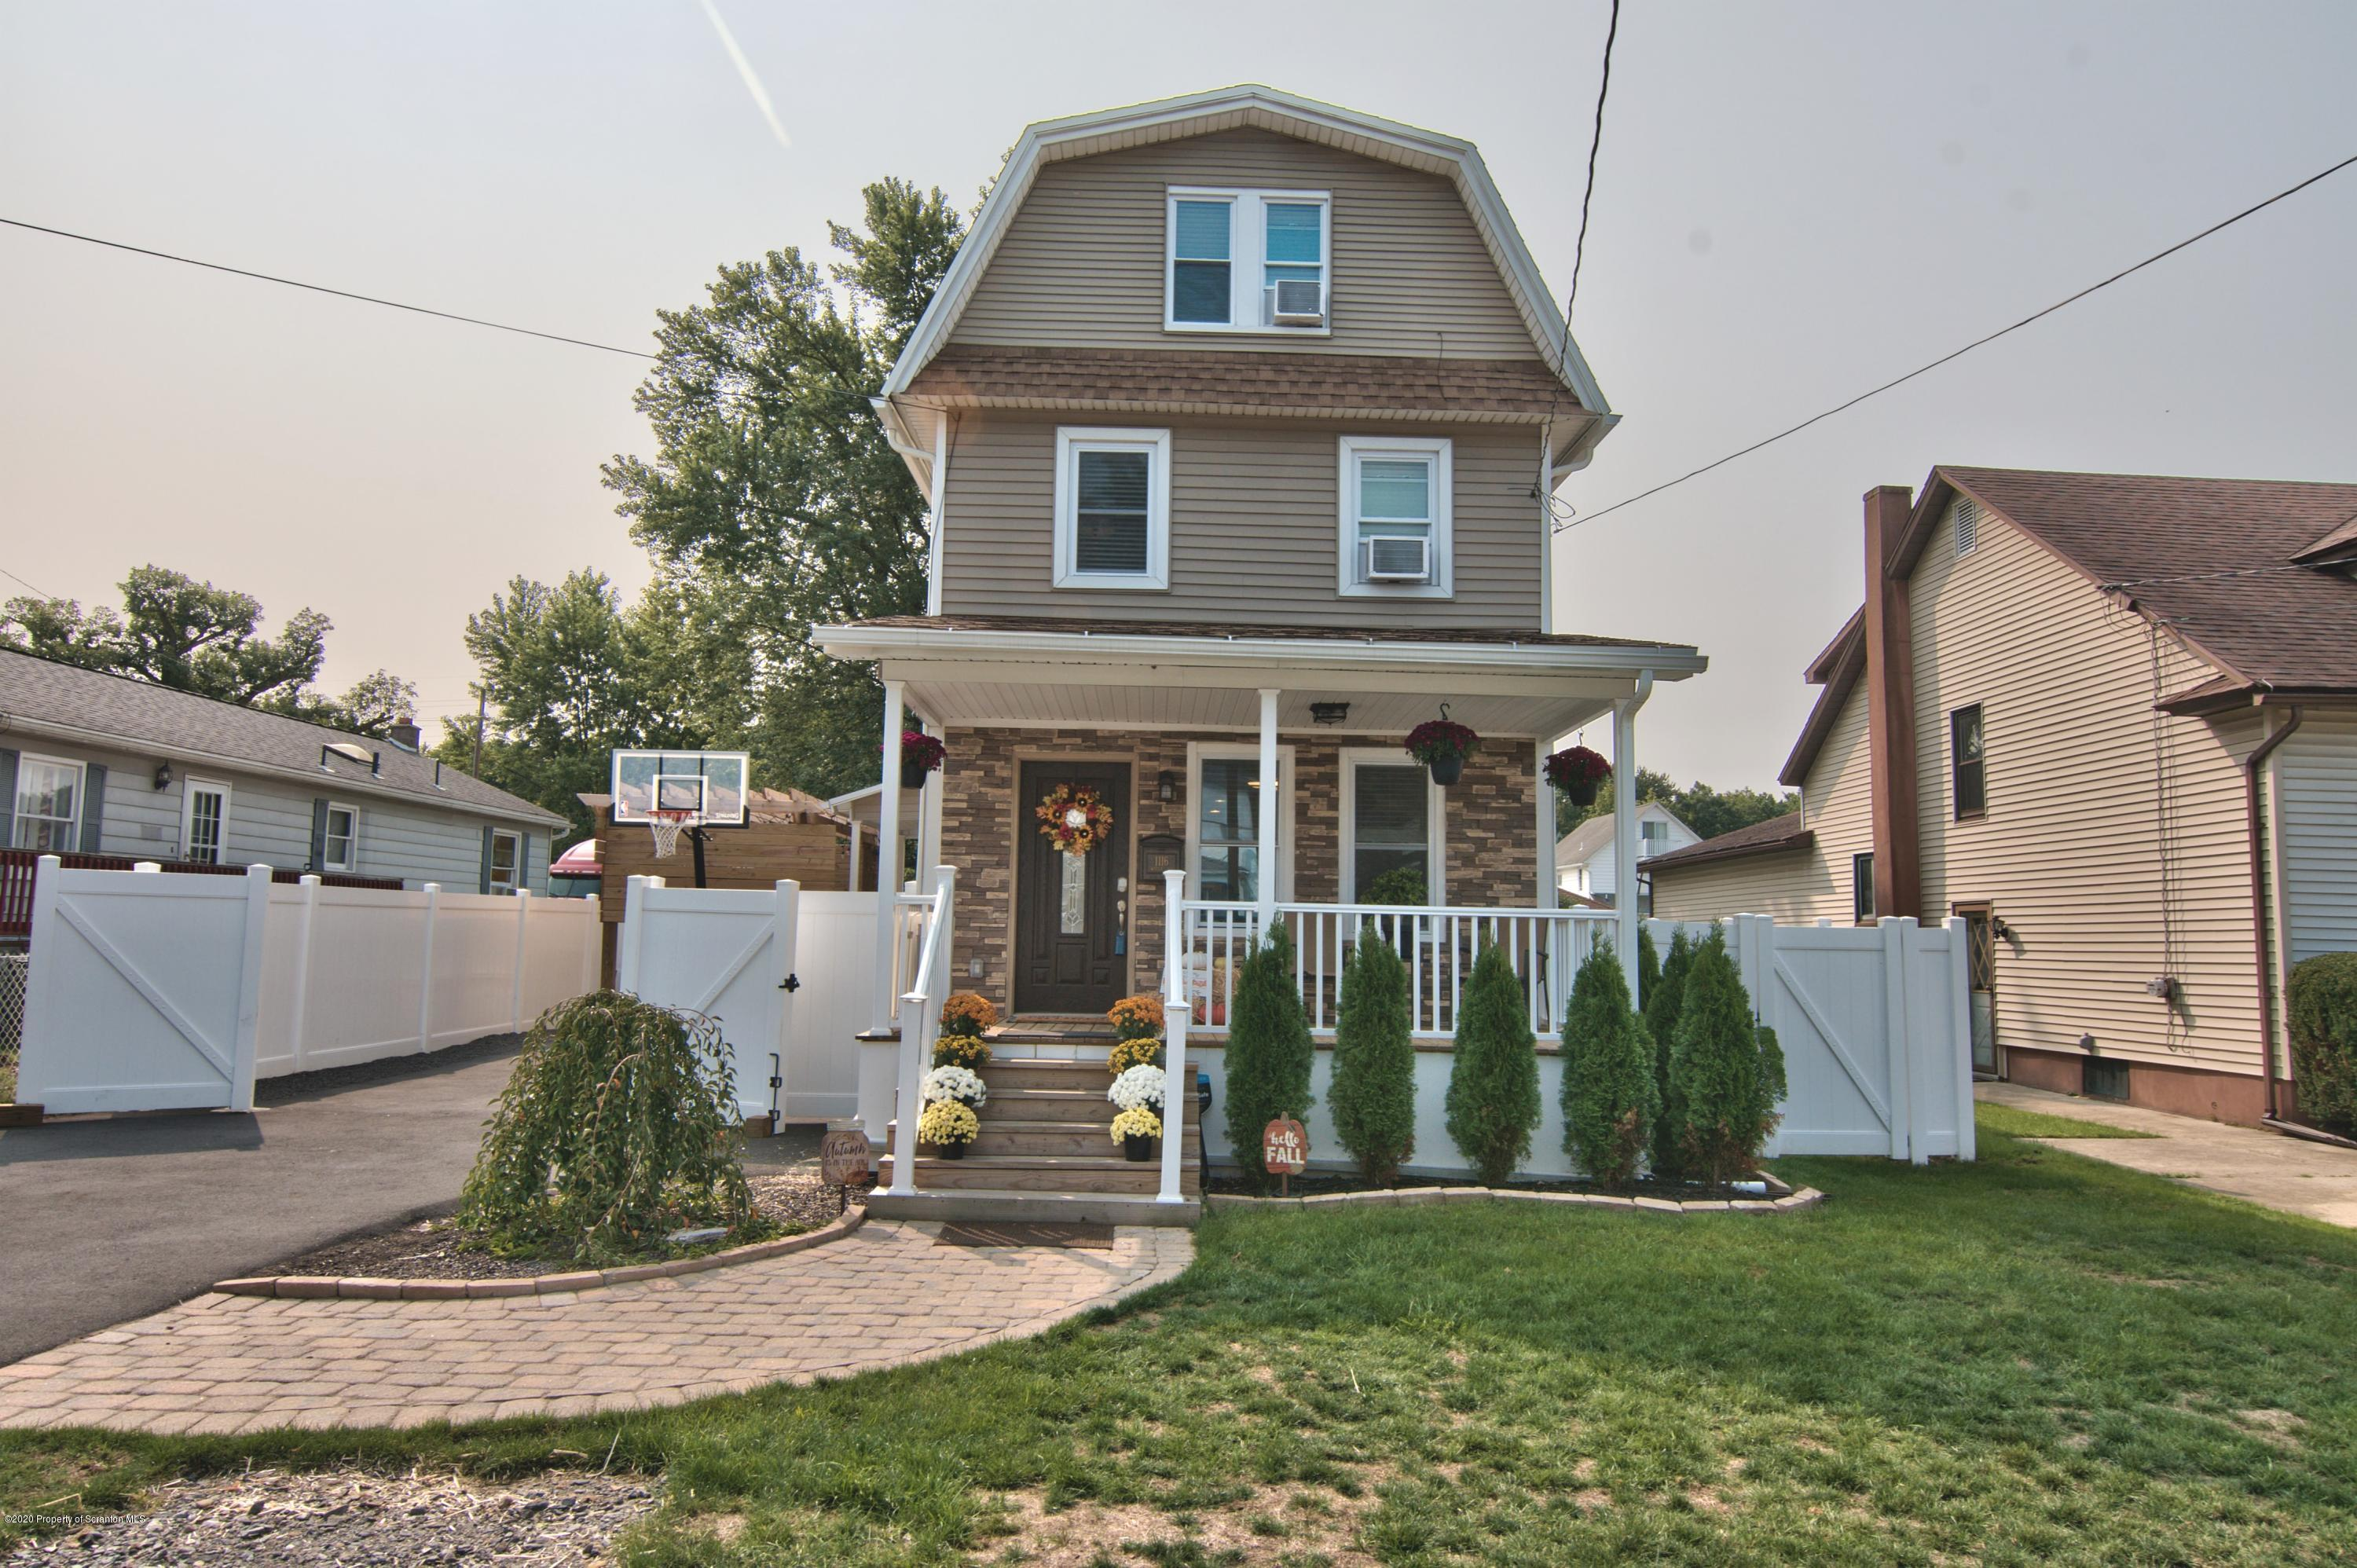 1116 Water St, Moosic, Pennsylvania 18507, 4 Bedrooms Bedrooms, 6 Rooms Rooms,4 BathroomsBathrooms,Single Family,For Sale,Water,20-3809